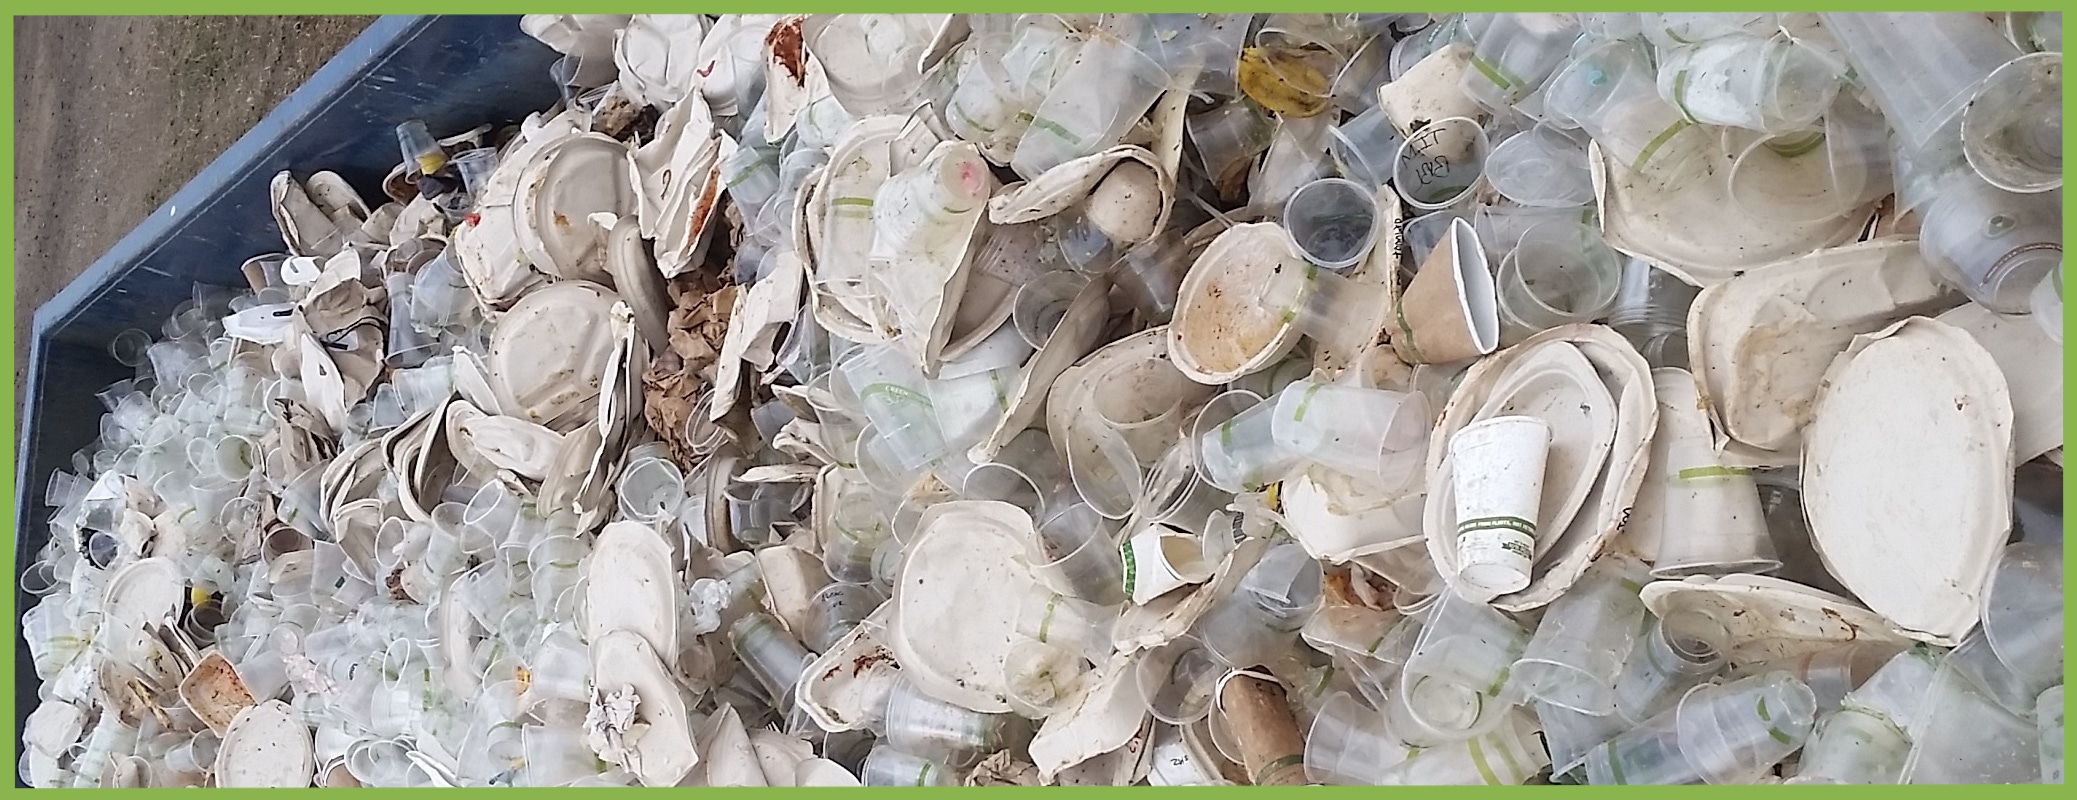 Dumpster full of compostable serviceware- paper, plastic and food scraps